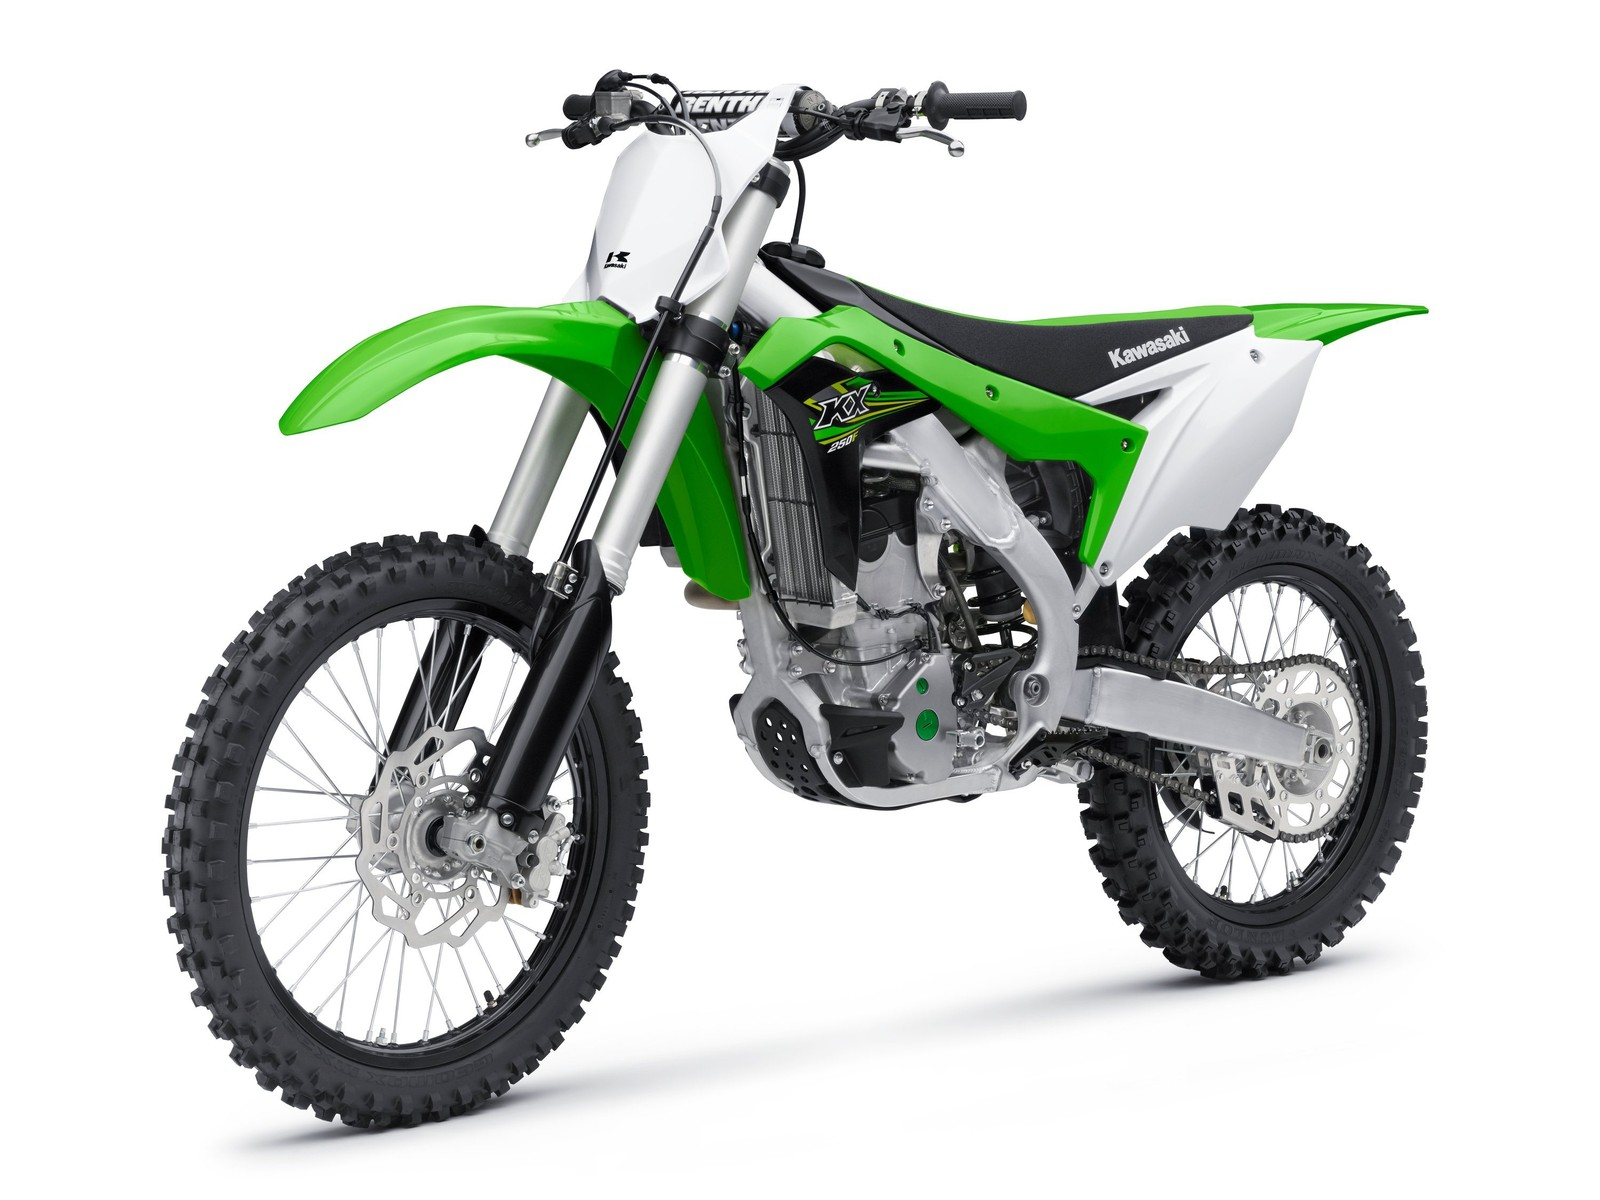 2017 Kawasaki KX250F - First Look: 2017 Kawasaki KX250F and KX450F ...